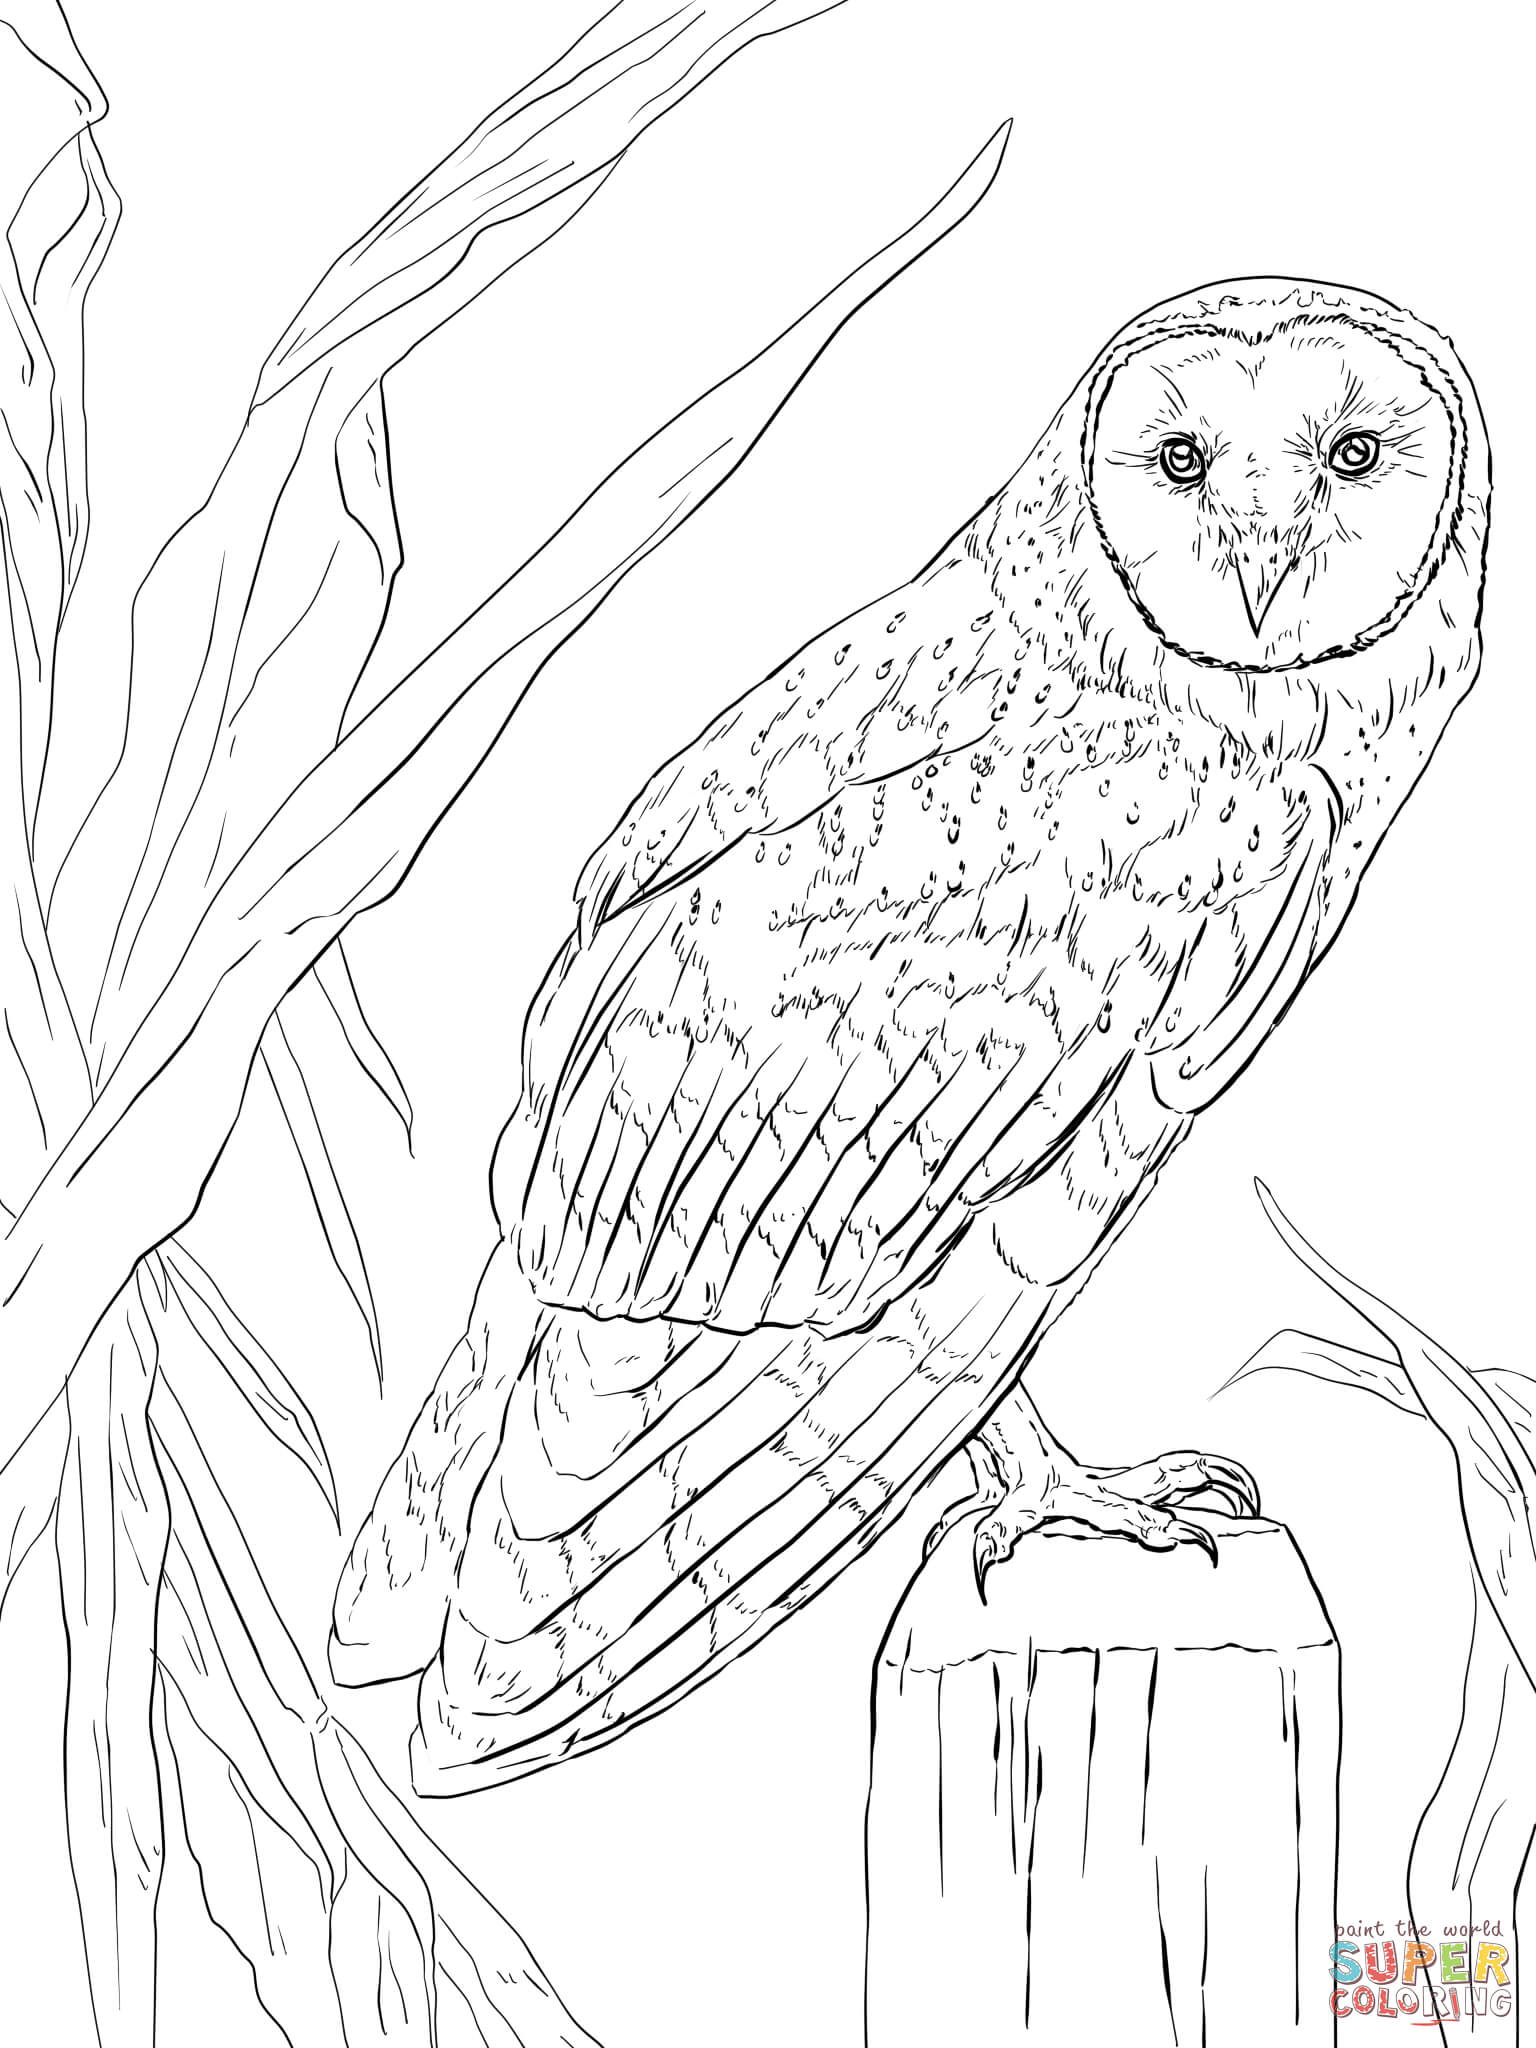 Barn Owl clipart nocturnal animal Page Owl Coloring Free coloring